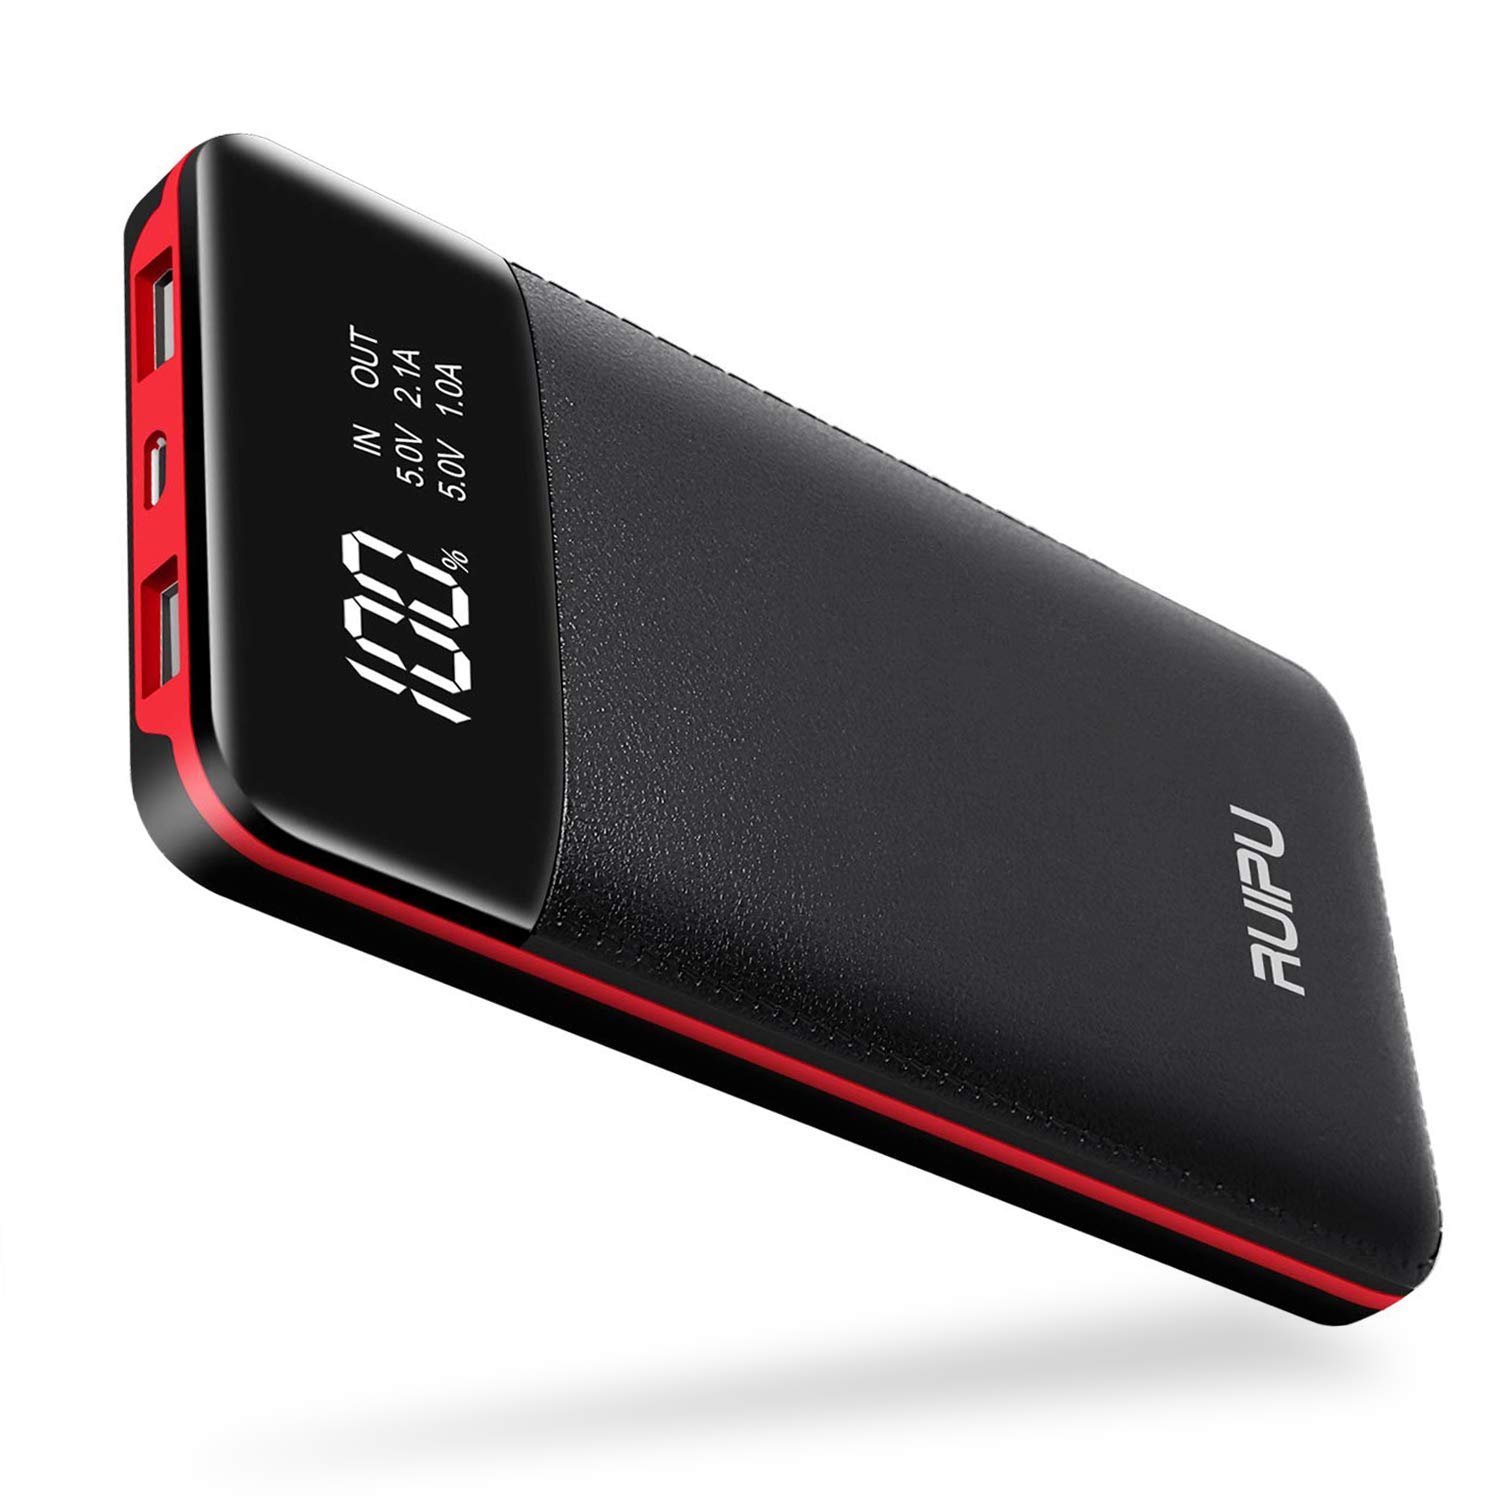 Power Bank Portable Charger 2 USB Outputs 24000mAh High Capacity Charge External Battery Pack with LCD Display, Compatible with Smart Phones,Android Phone,Tablet and More by RUIPU